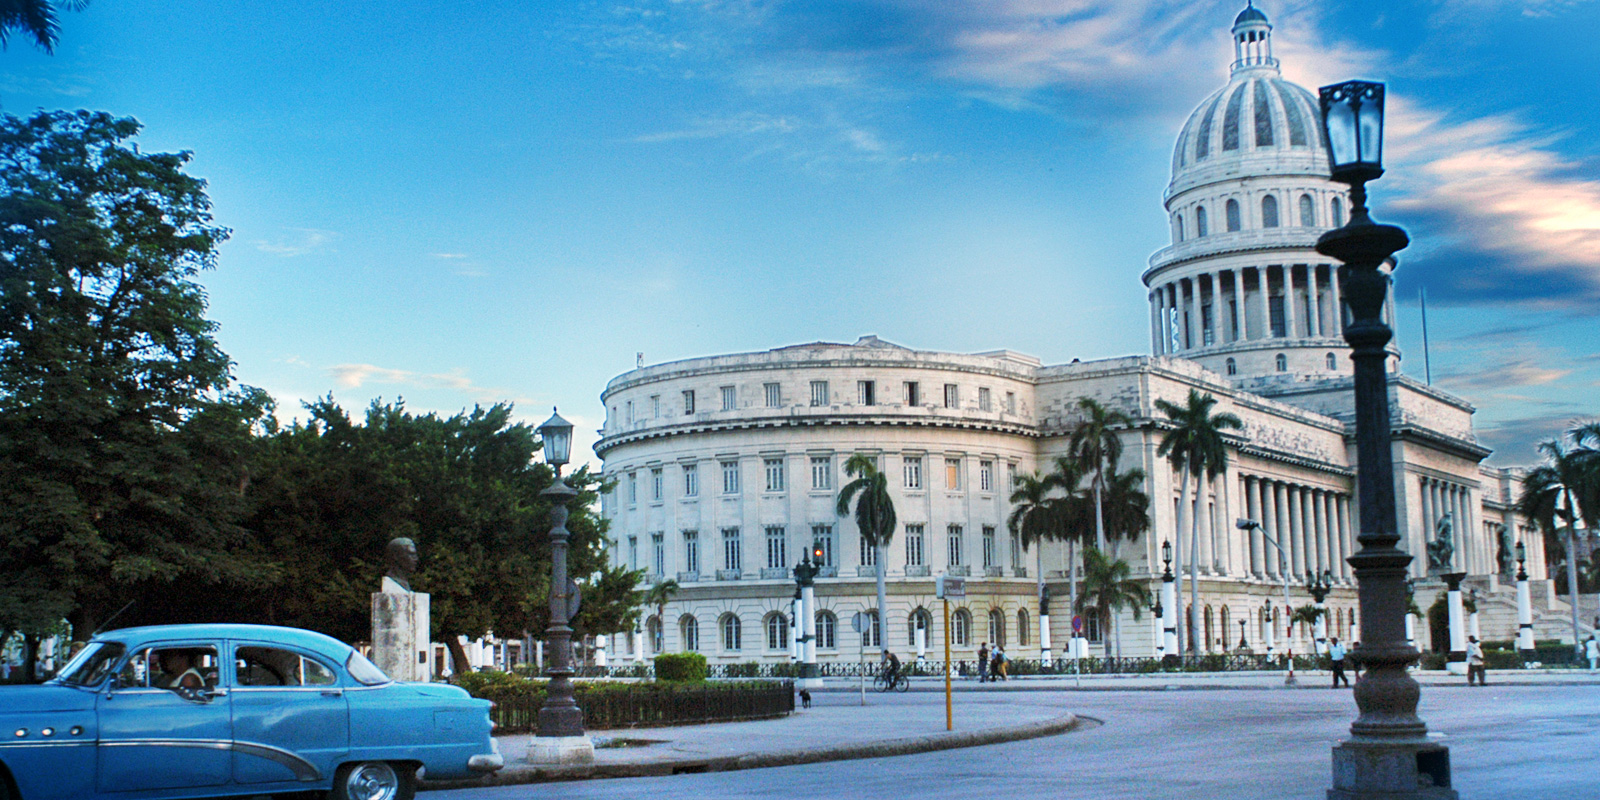 2017 Travel To Cuba Revised U S Regulations Support Cuba S Private Sector But